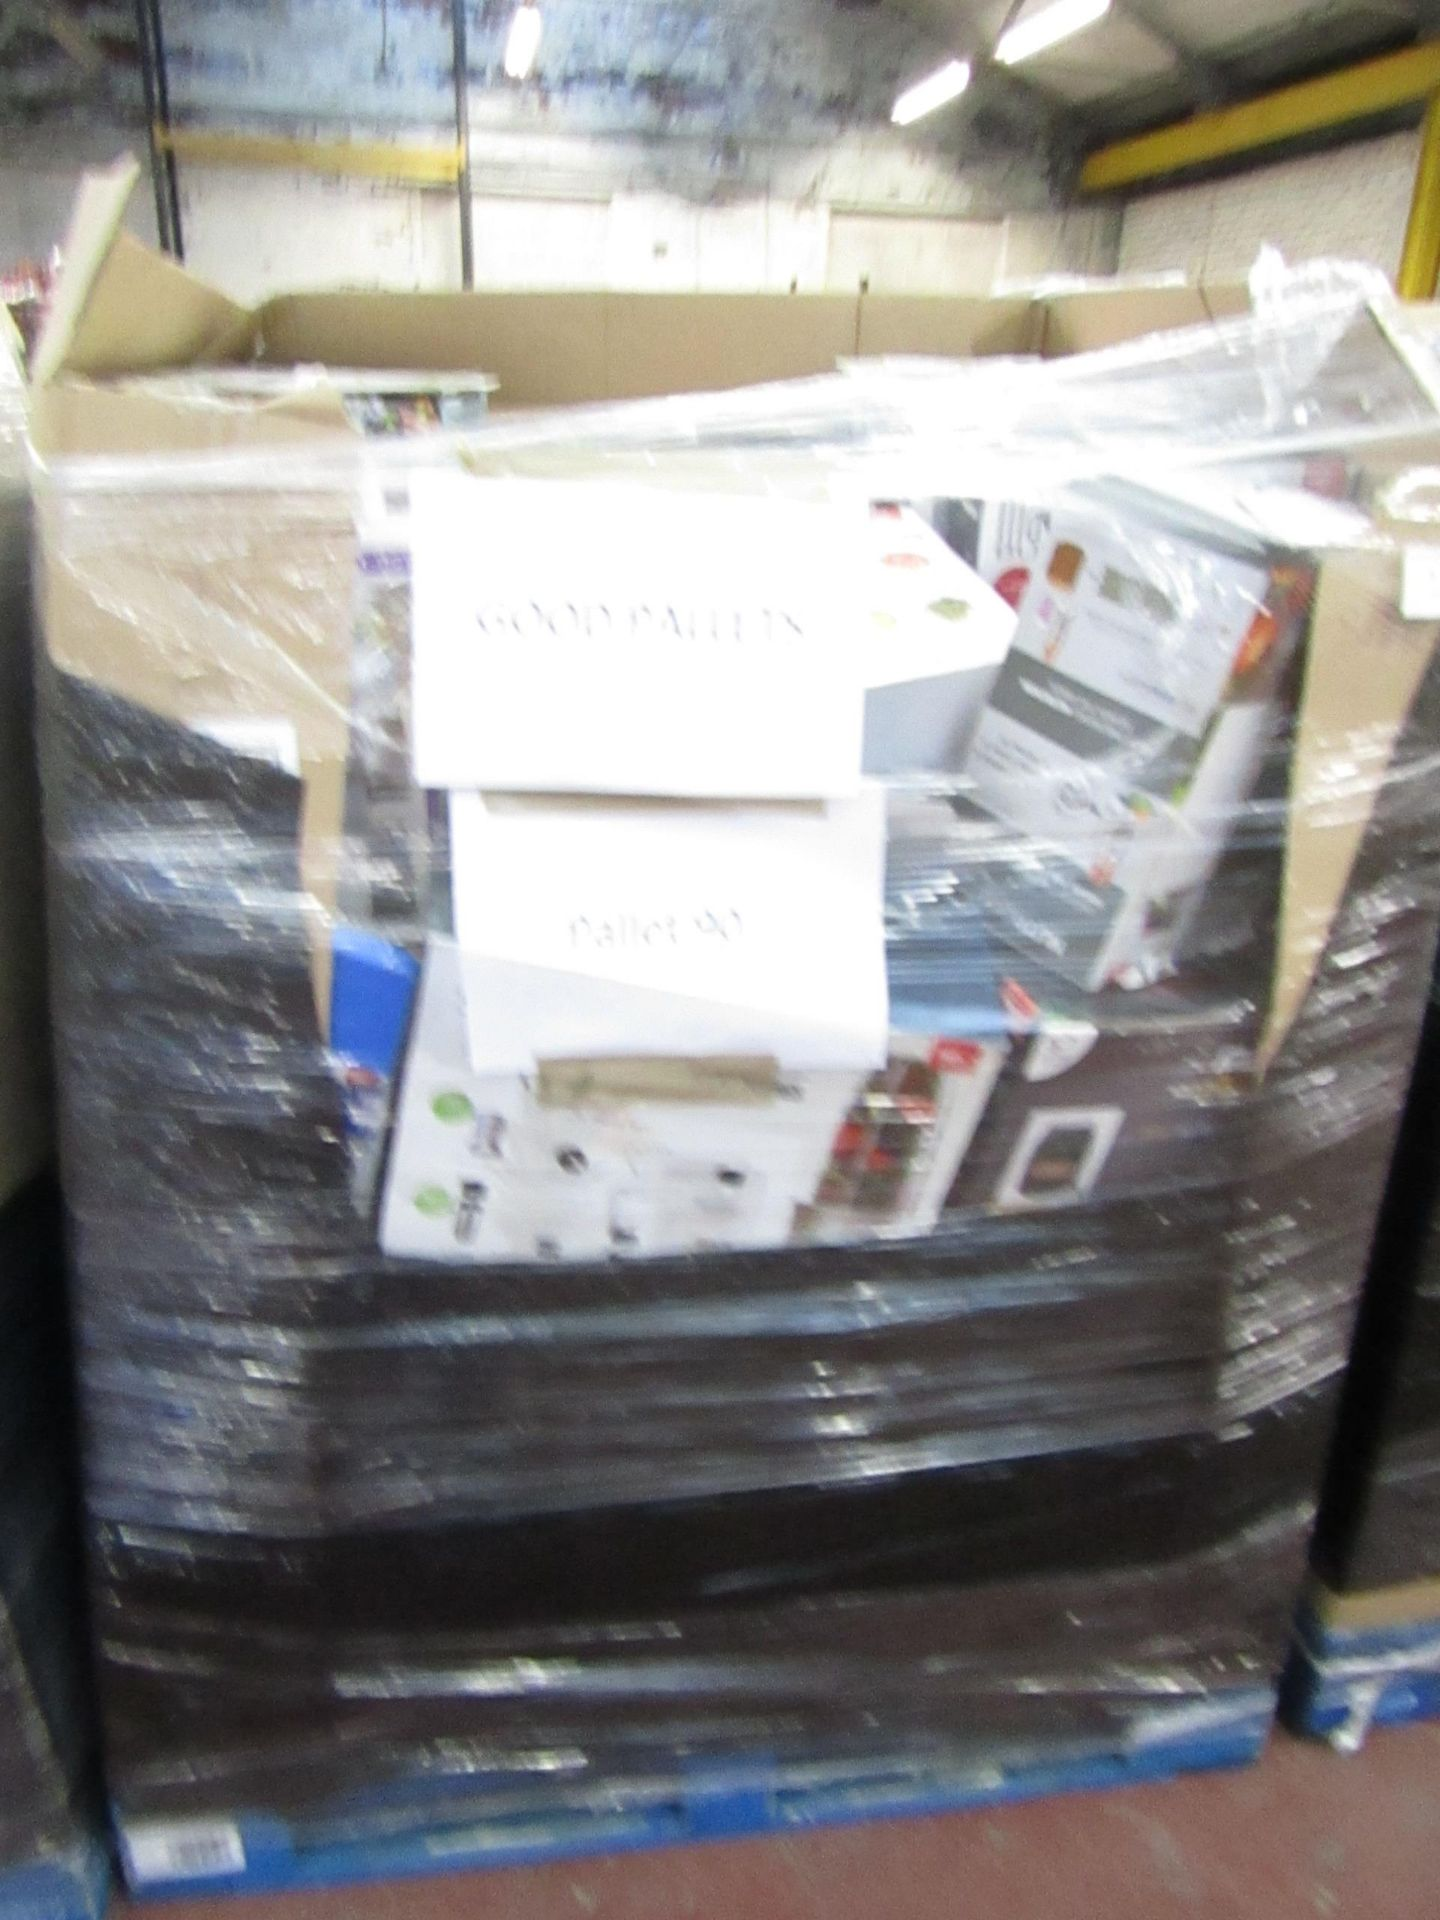 Lot 3 - |APPROX 36X | THE PALLET CONTAINS NUTRI BULLETS, AIR HAWKS, AIR FRYER XL'S, RED COPPER CHEFS, AND